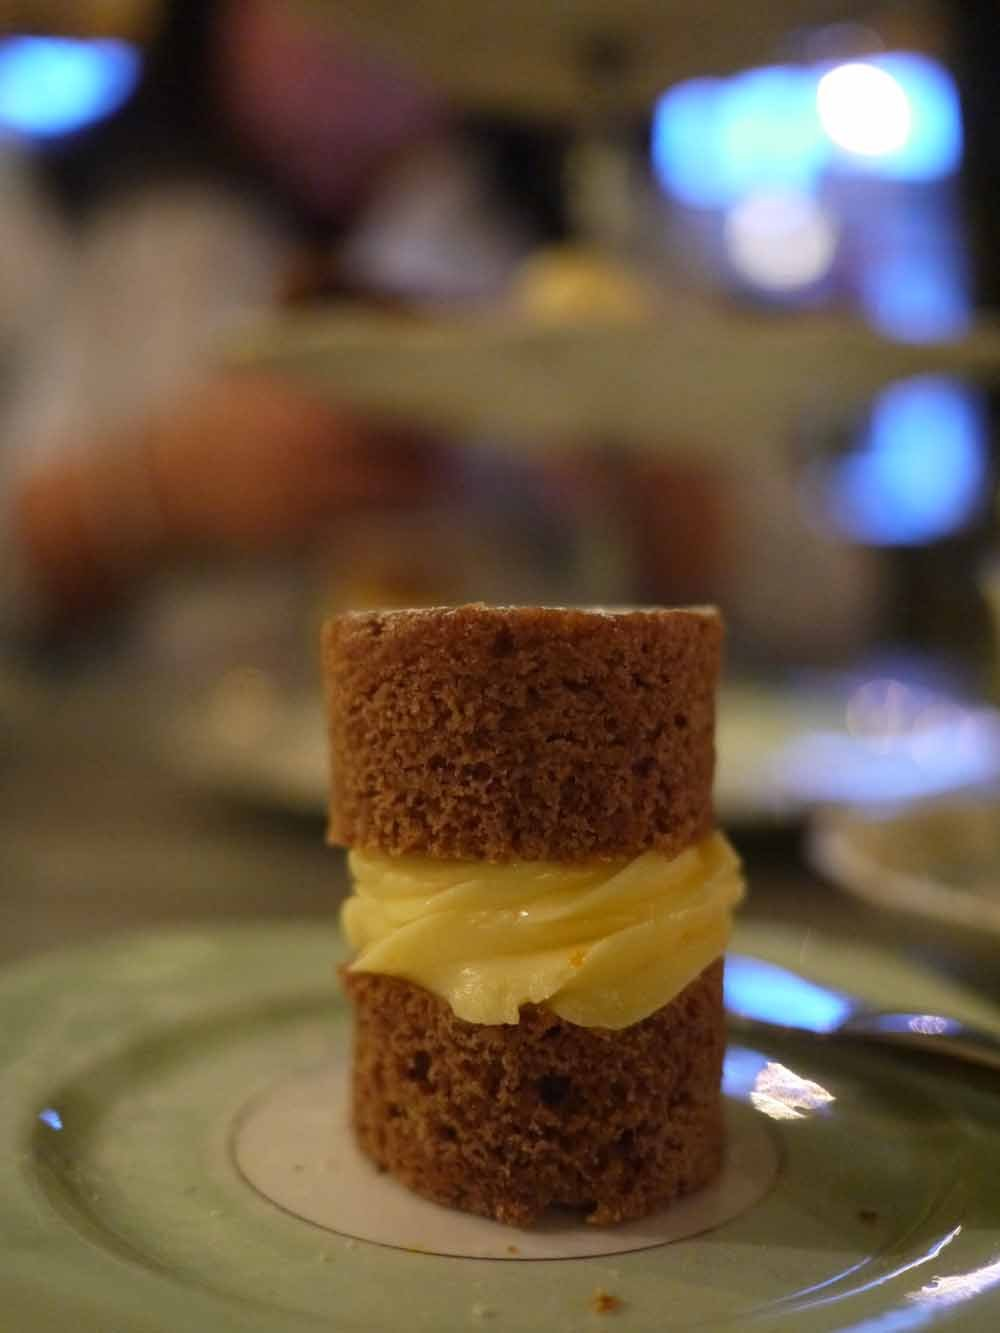 Review of Afternoon Tea at The Bluebell, Henley in Arden